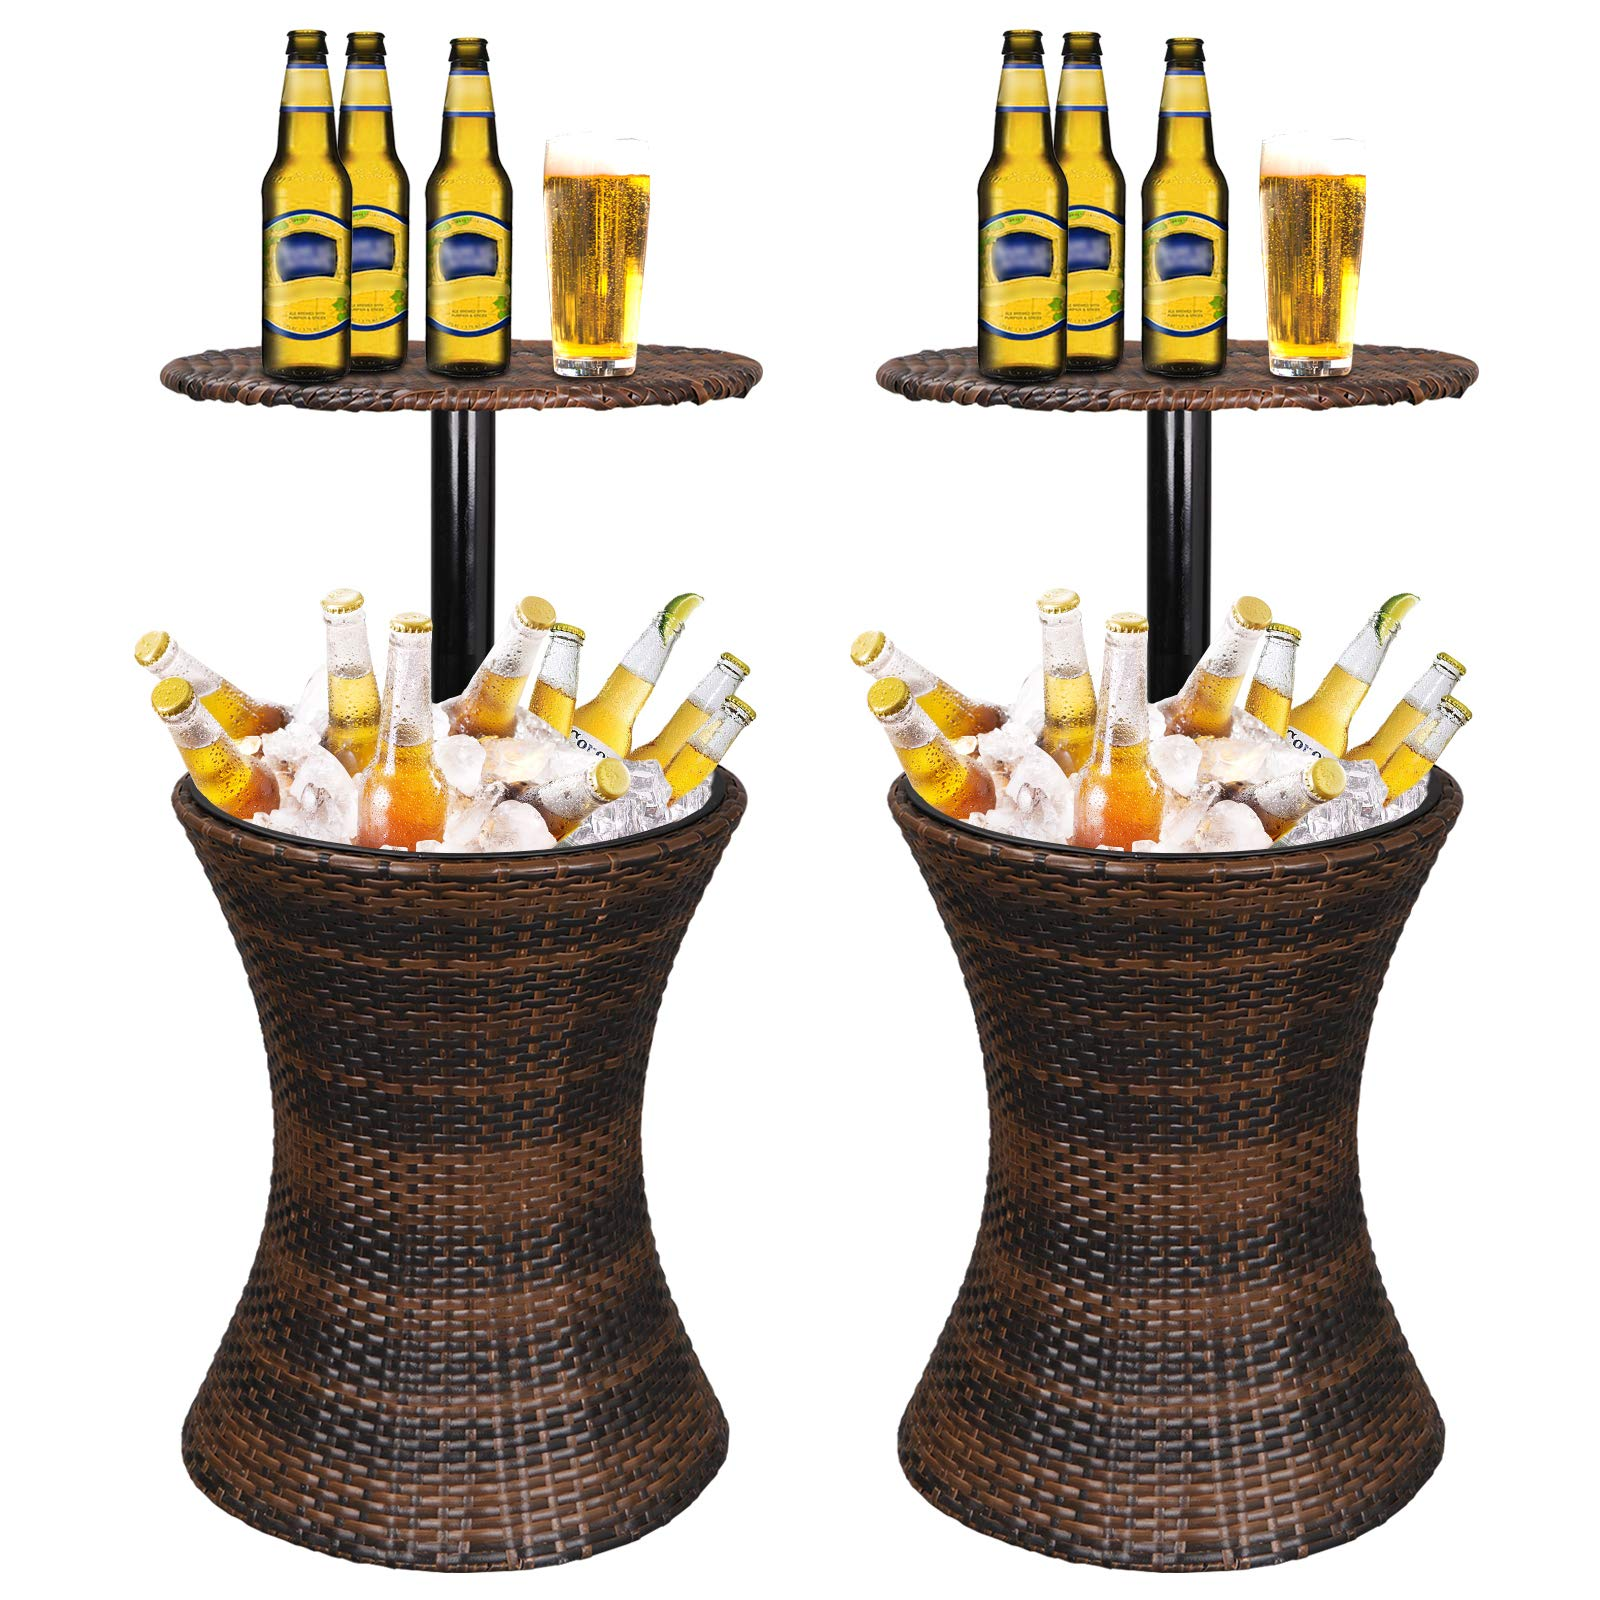 ZENY Cool Bar Rattan Style Patio Pool Cooler Table W/Height Adjustable Top Outdoor Wicker Ice Bucket Cocktail Coffee Table for Party Deck Pool Use, Set of 2